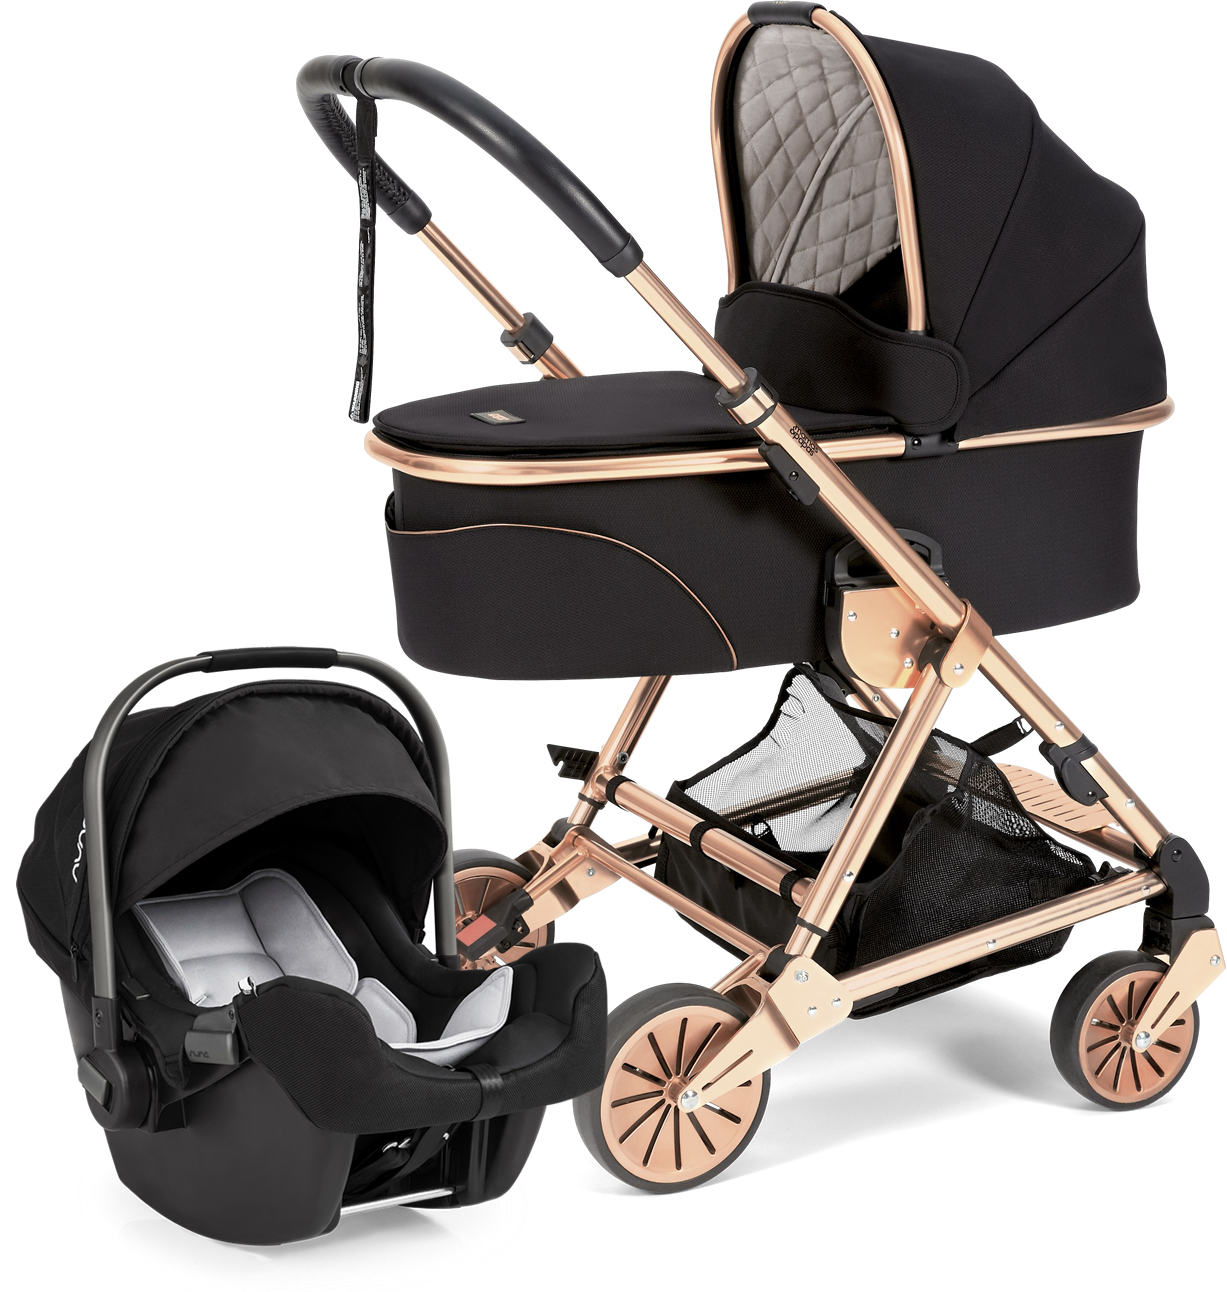 Mamas & Papas Urbo 2 Stroller, Signature Edition Black